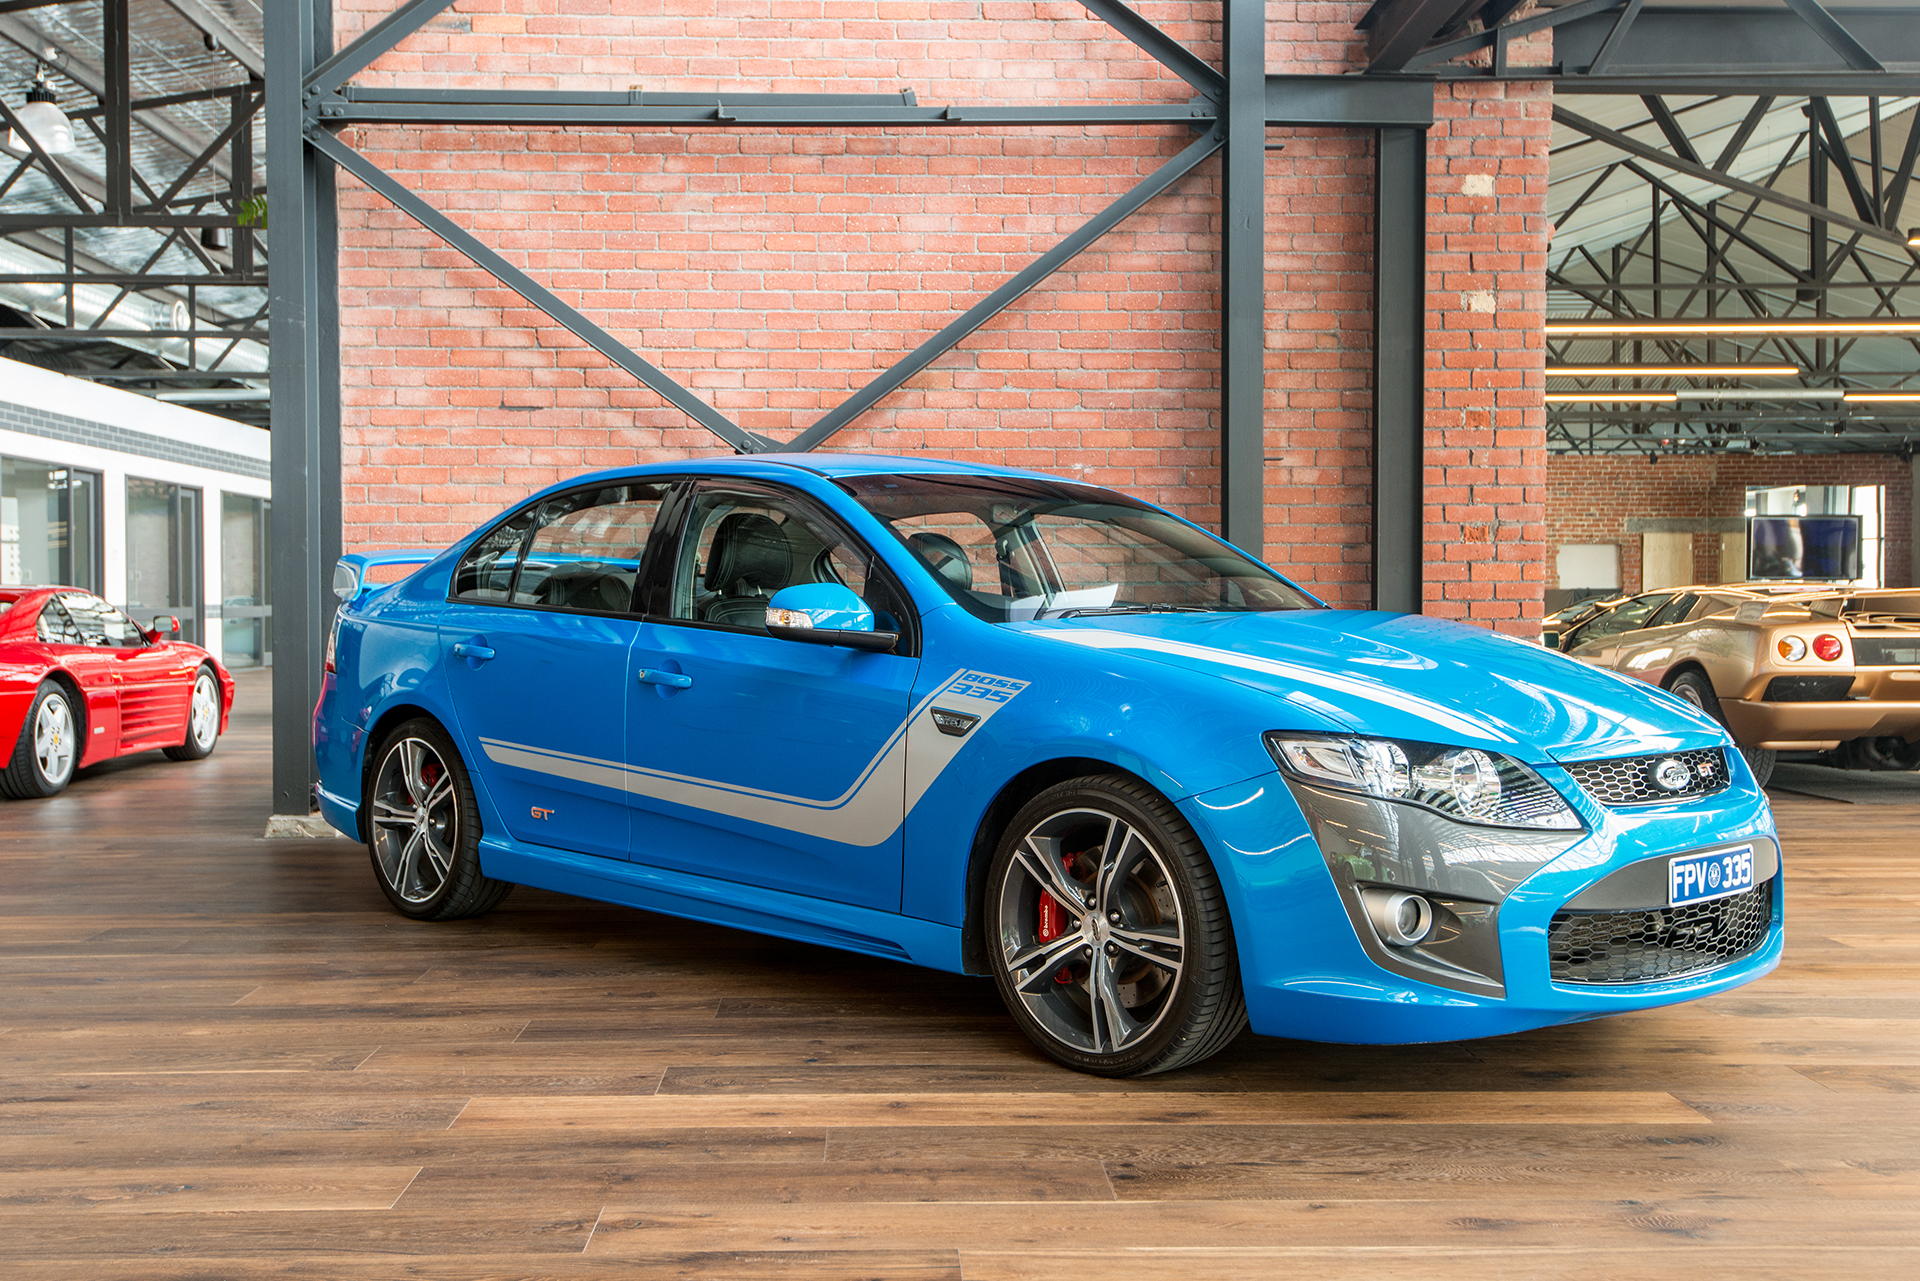 2010 fpv gt boss 335 richmonds classic and prestige cars storage and sales adelaide. Black Bedroom Furniture Sets. Home Design Ideas